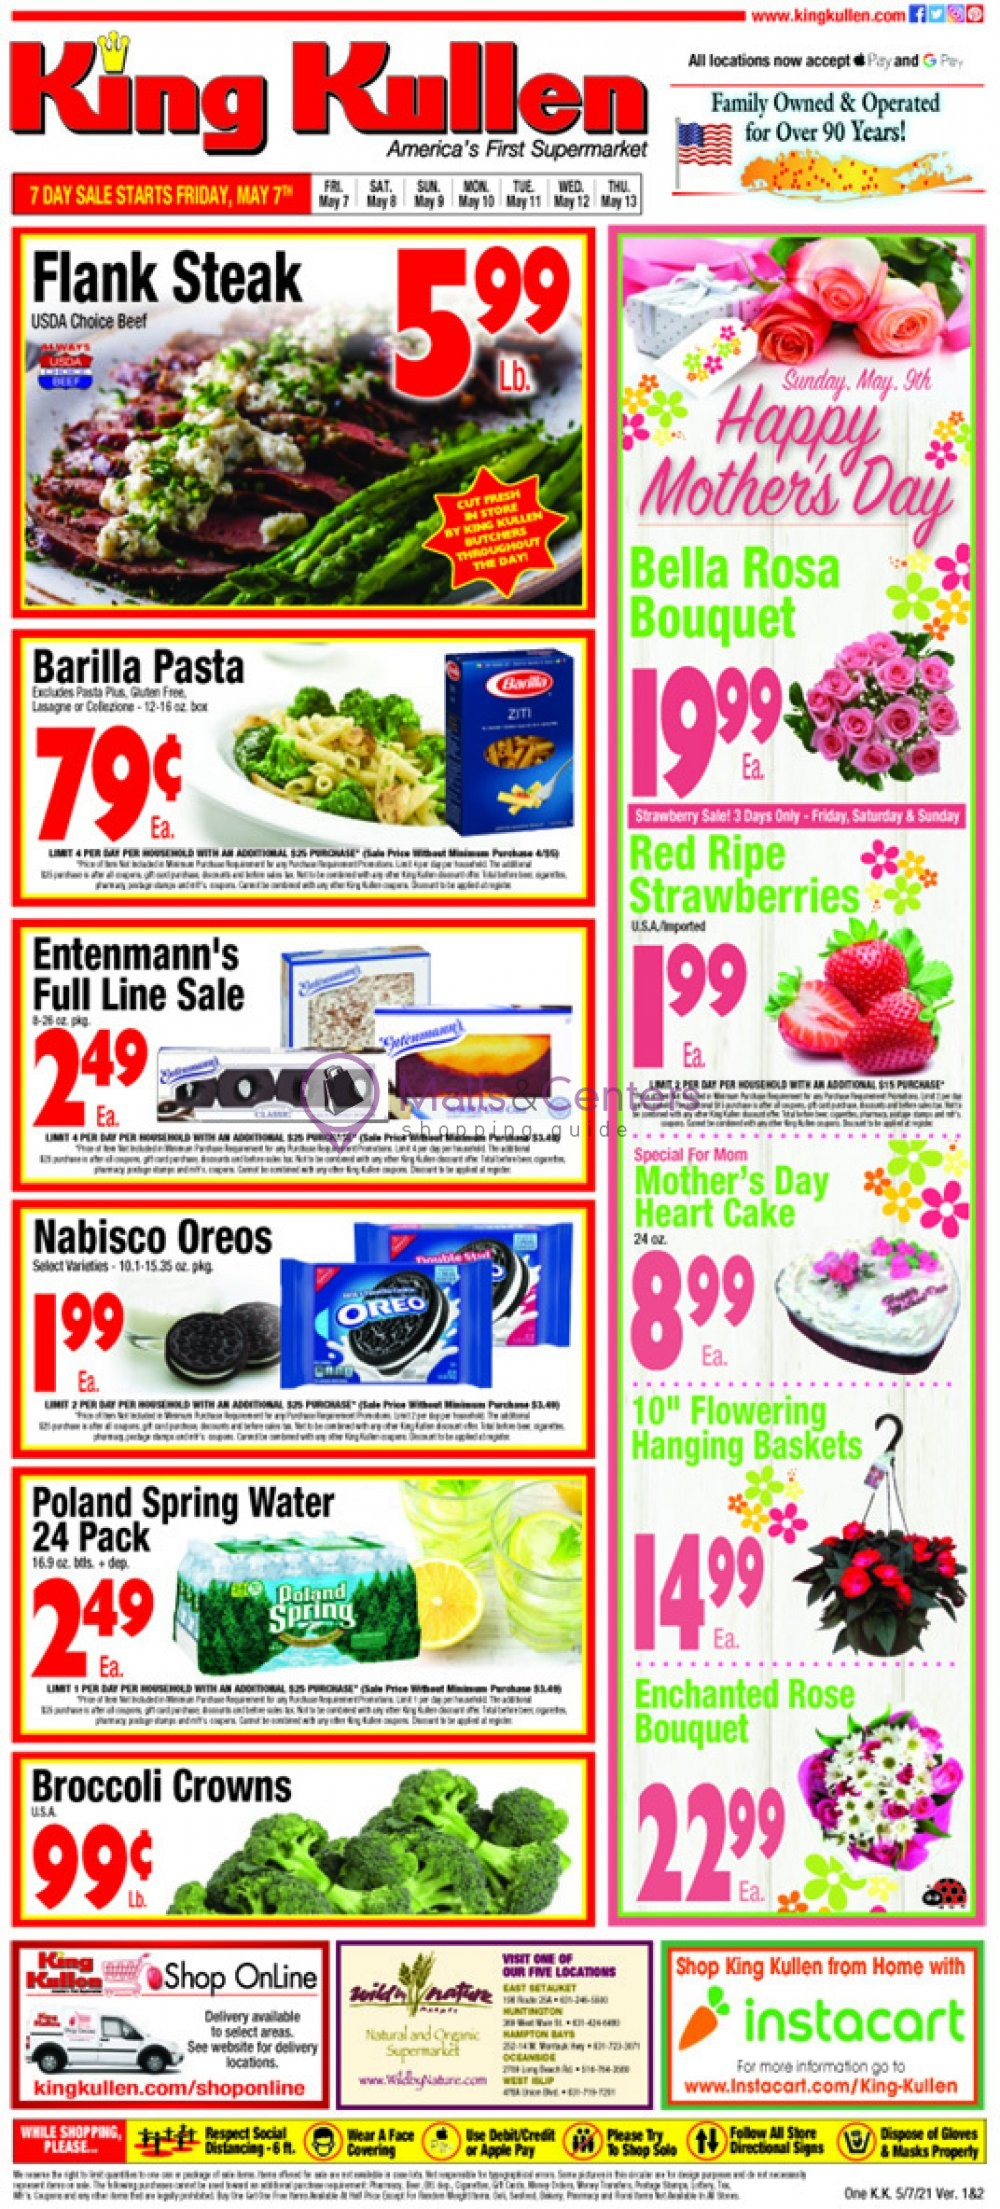 weekly ads King Kullen - page 1 - mallscenters.com